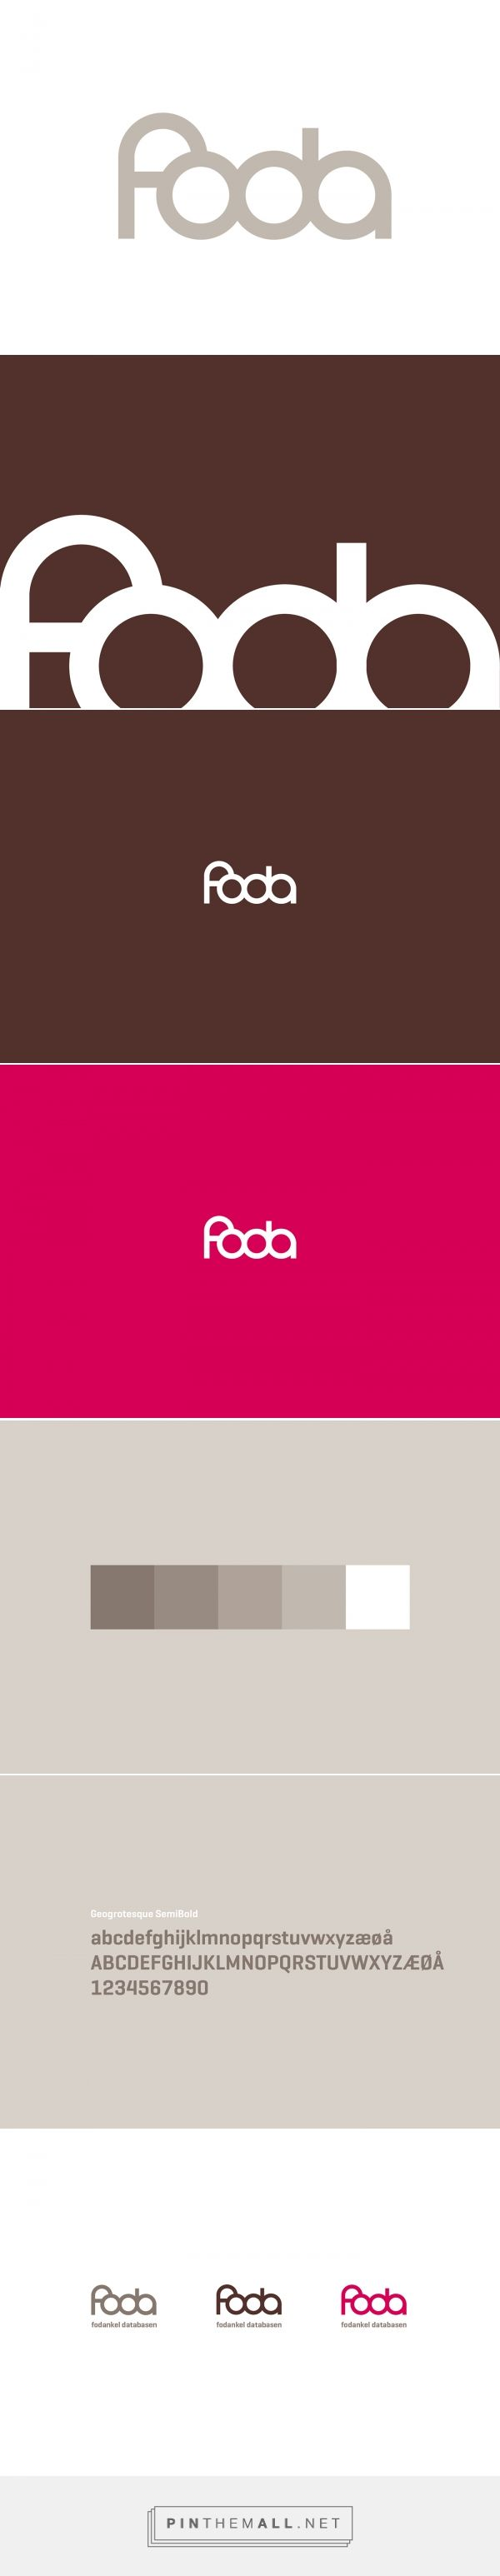 Micro identity for FODA - the foot ankle database on Behance - created via http://pinthemall.net